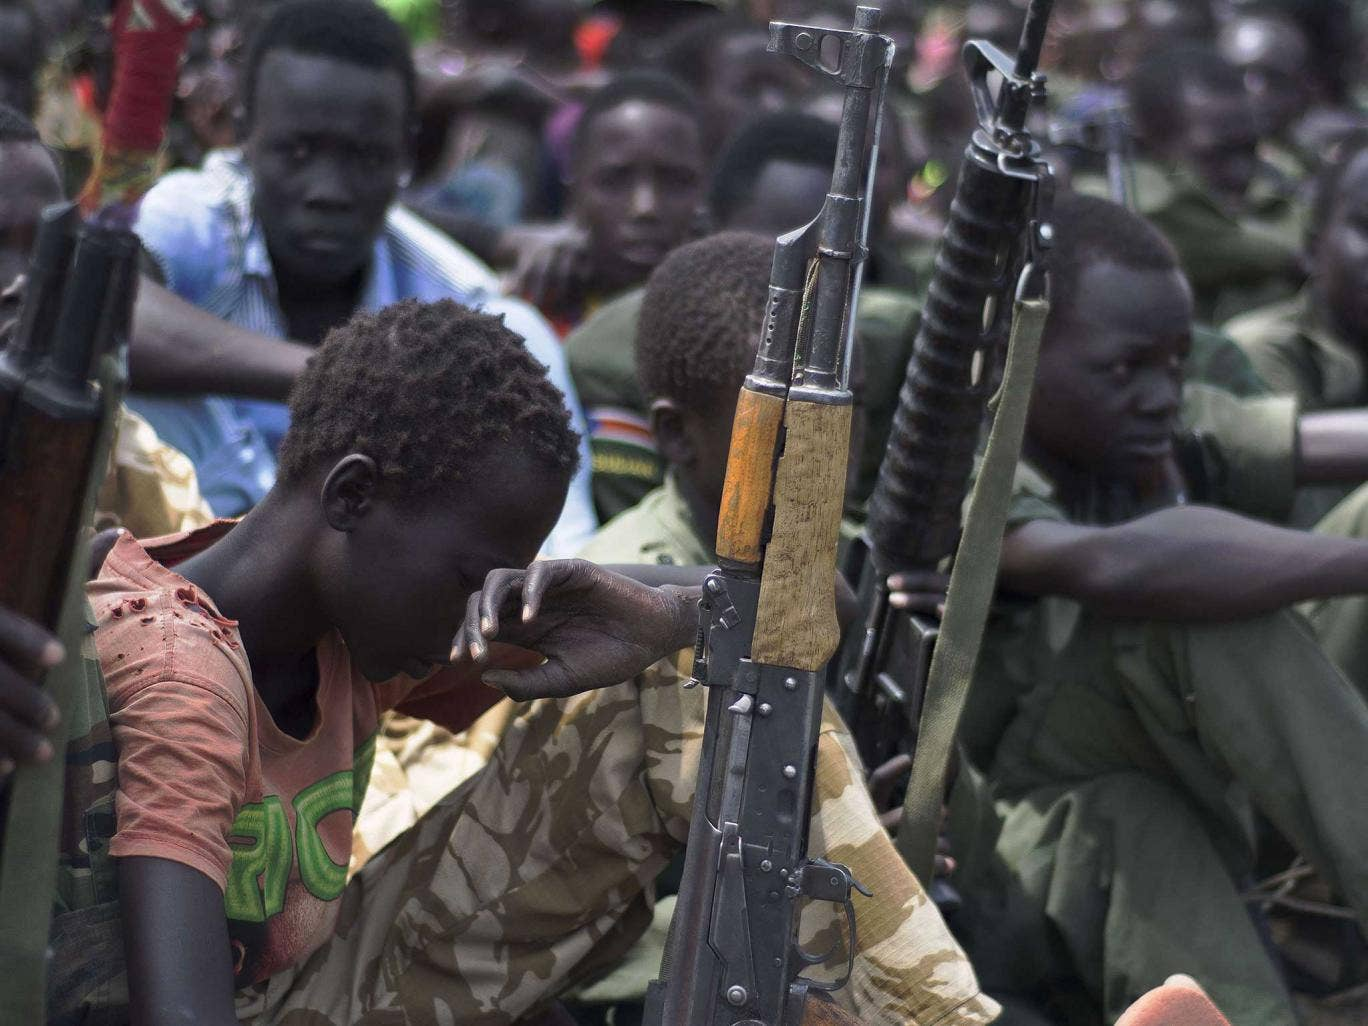 abducted children forced to become soldiers Child soldiers have become productive, capable and  dren become more easily  armed, and as con-  abducted and forced to take on di¡erent roles.